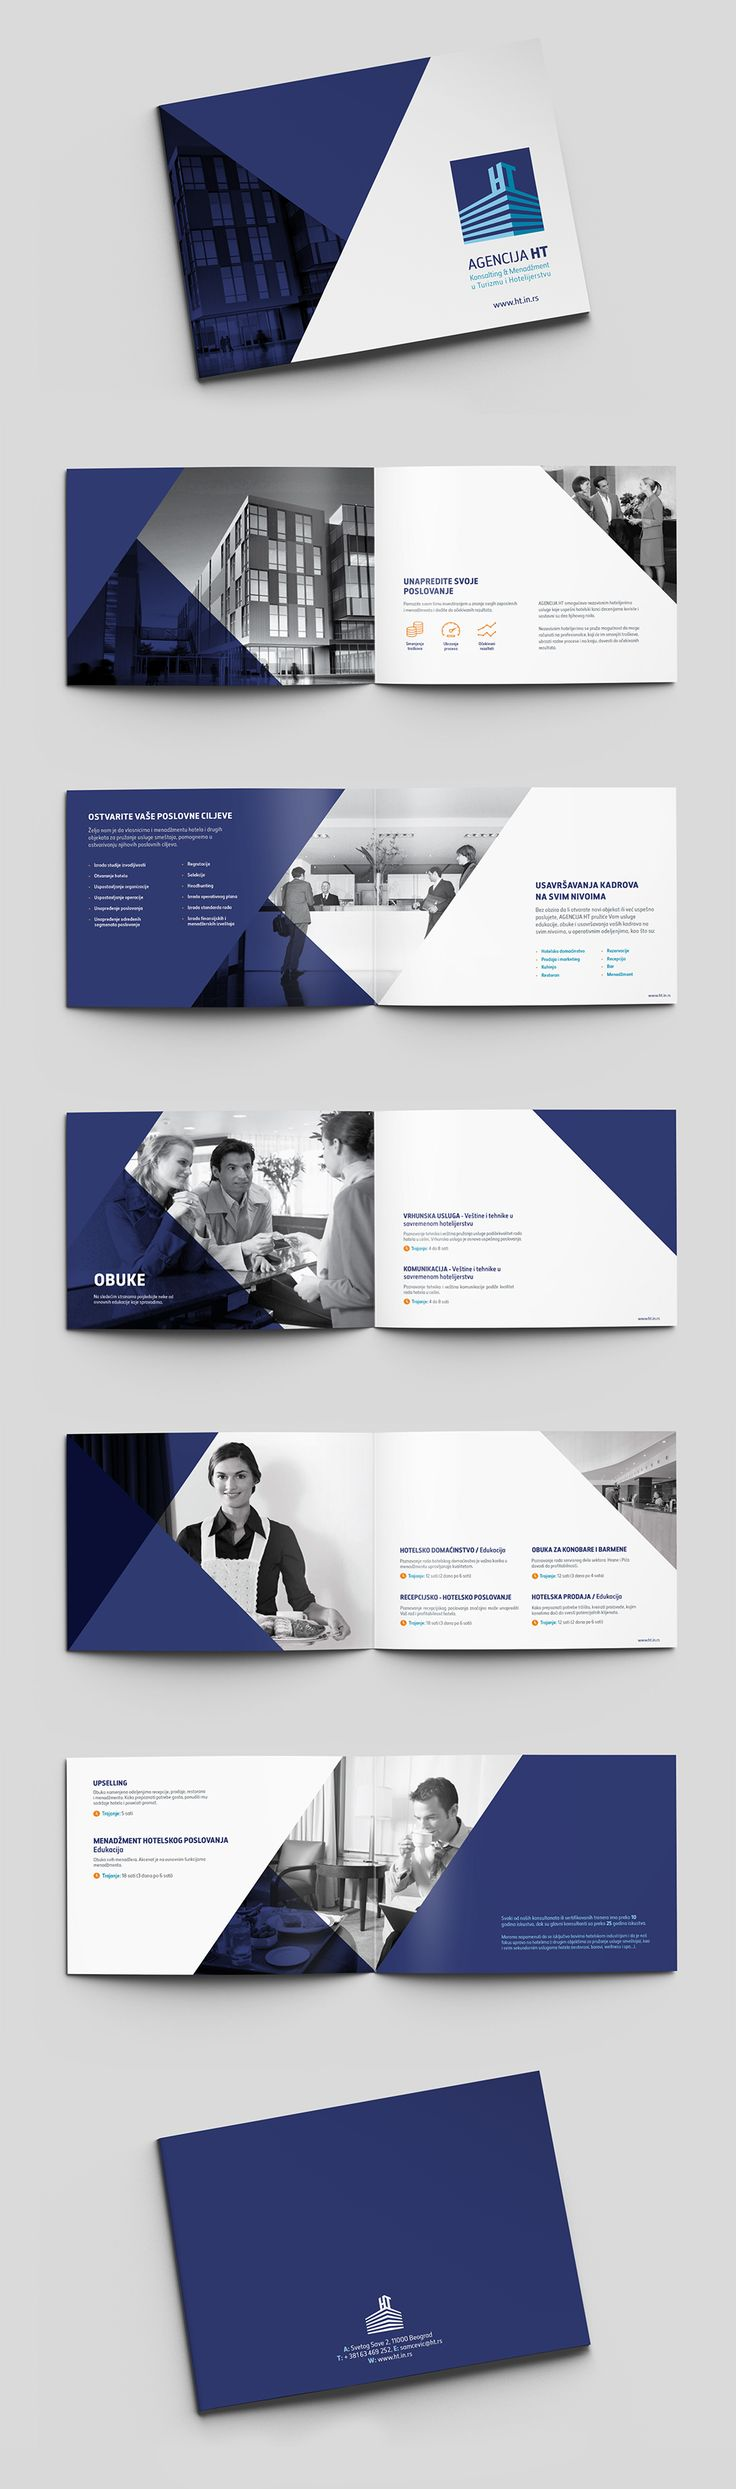 HT Agency Brochure. Design of all pages.